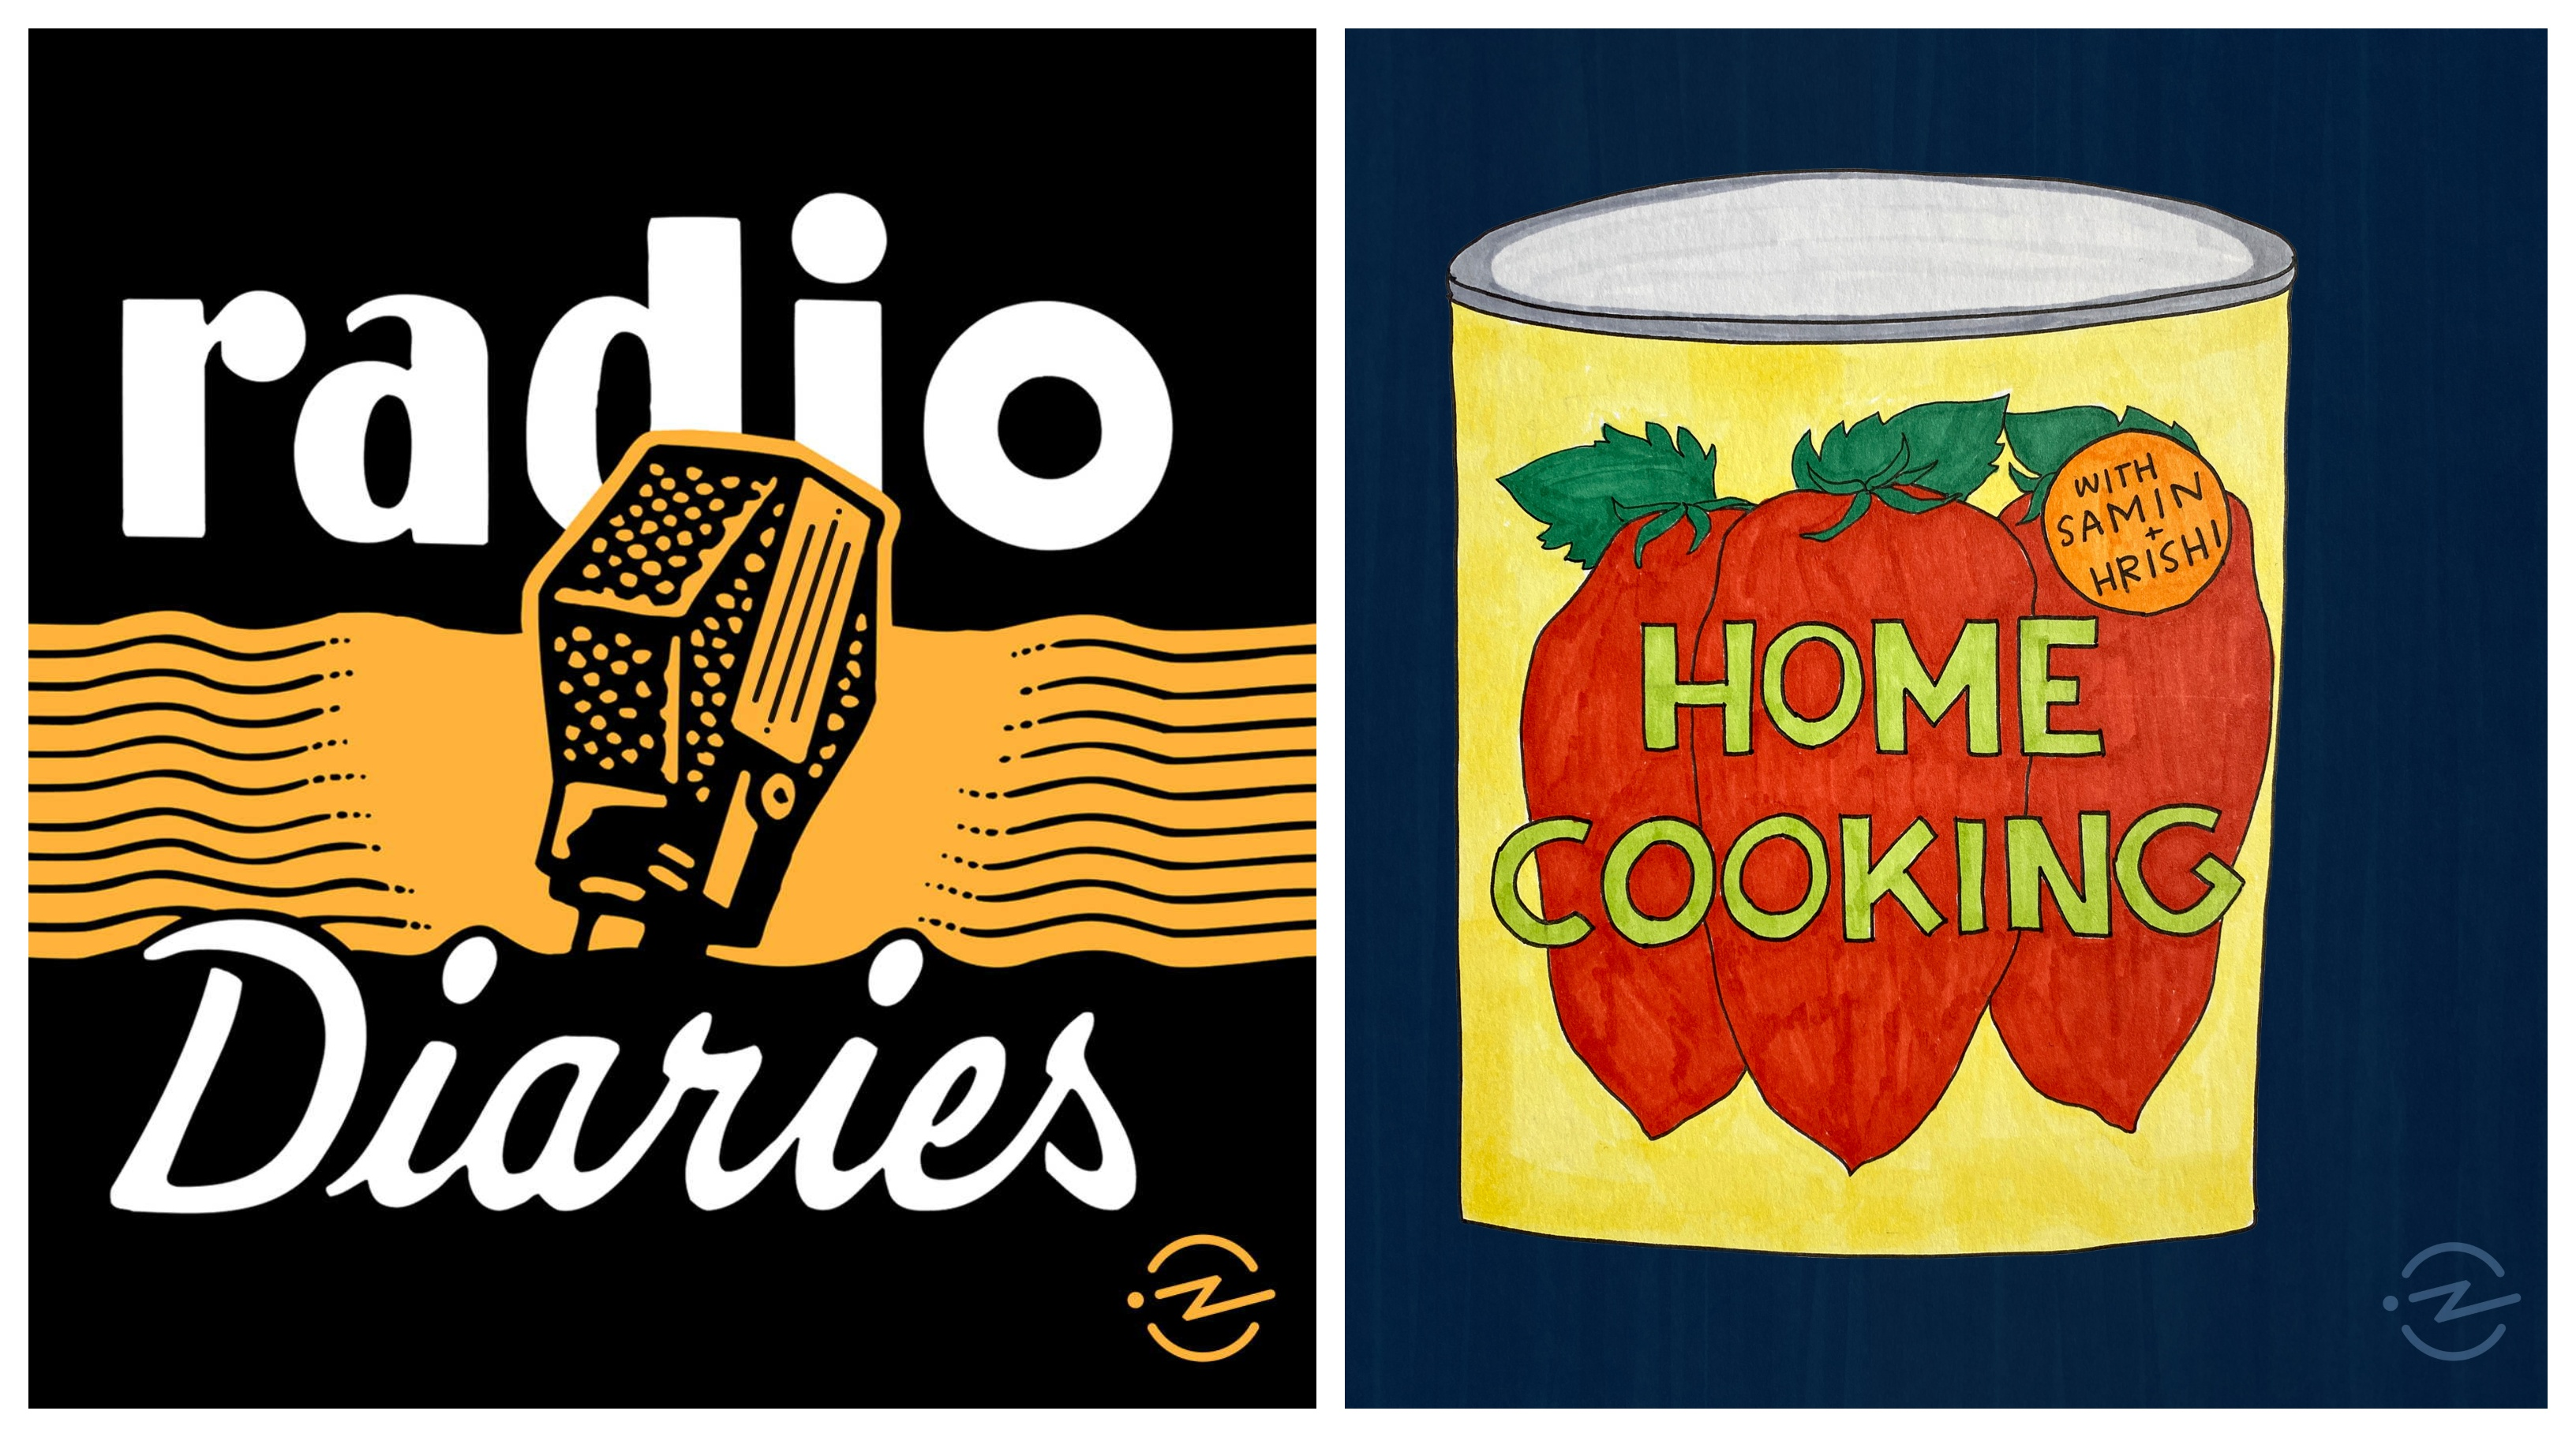 Radio Diaries - Home Cooking